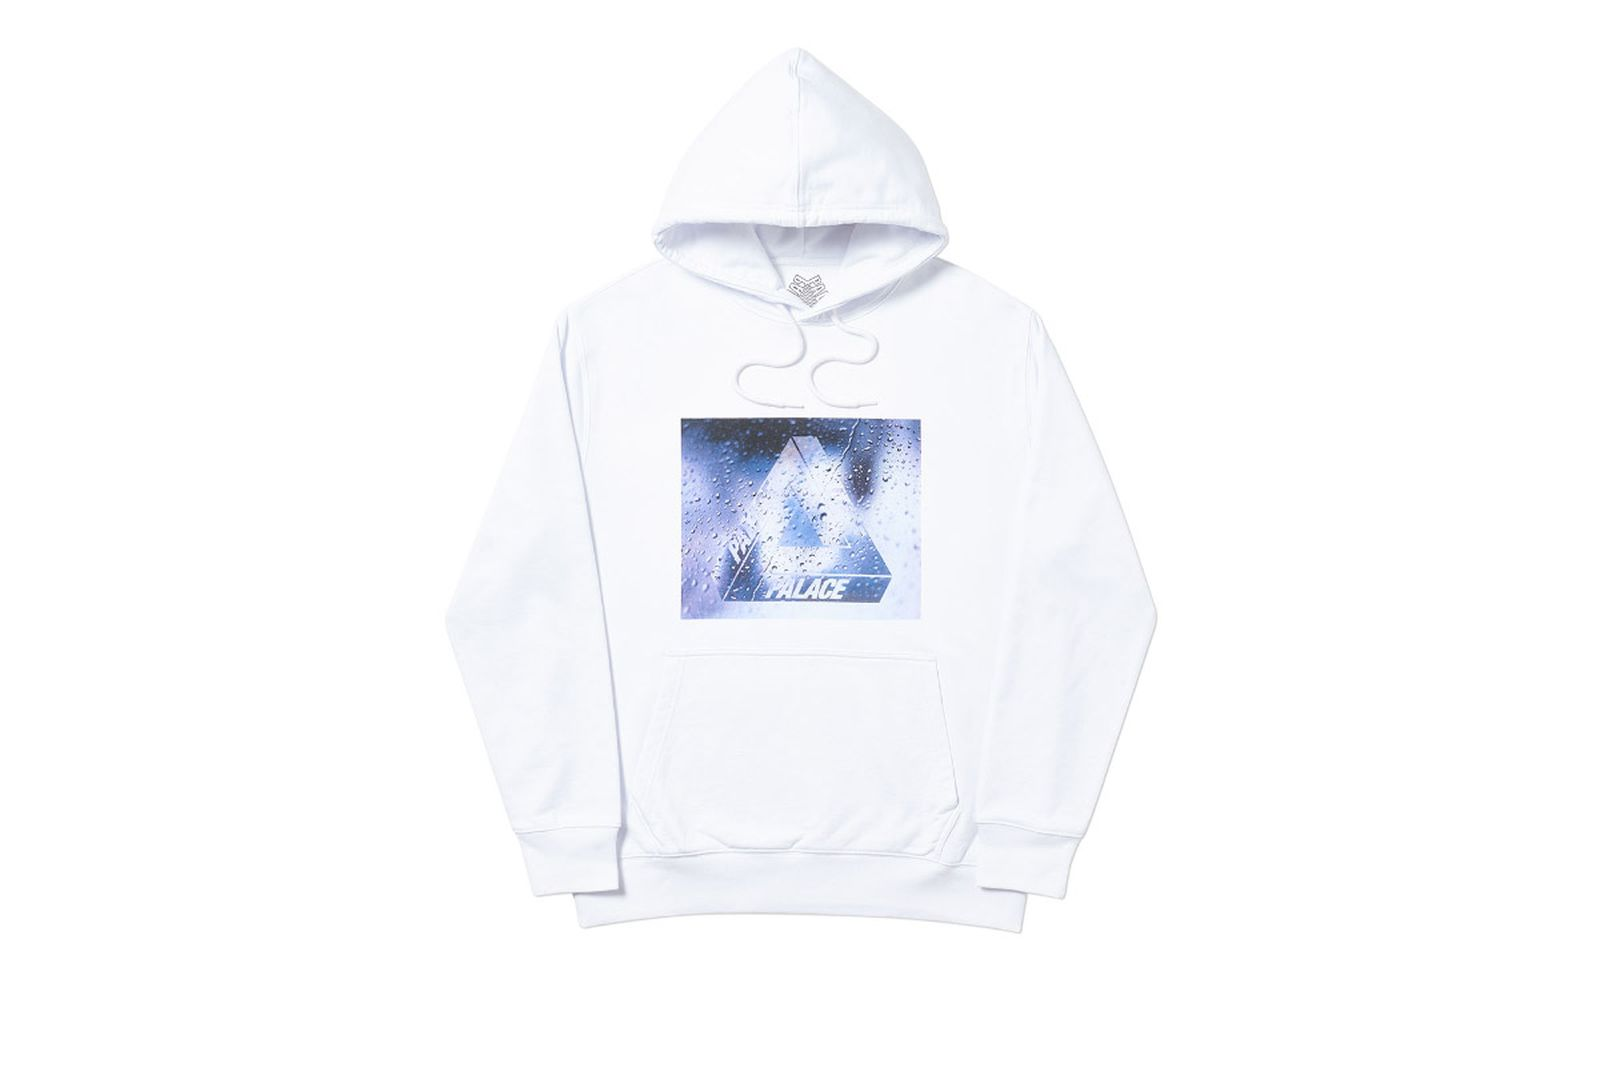 Palace 2019 Autumn Hoodie Window Licker white front 14662 ADJUSTED